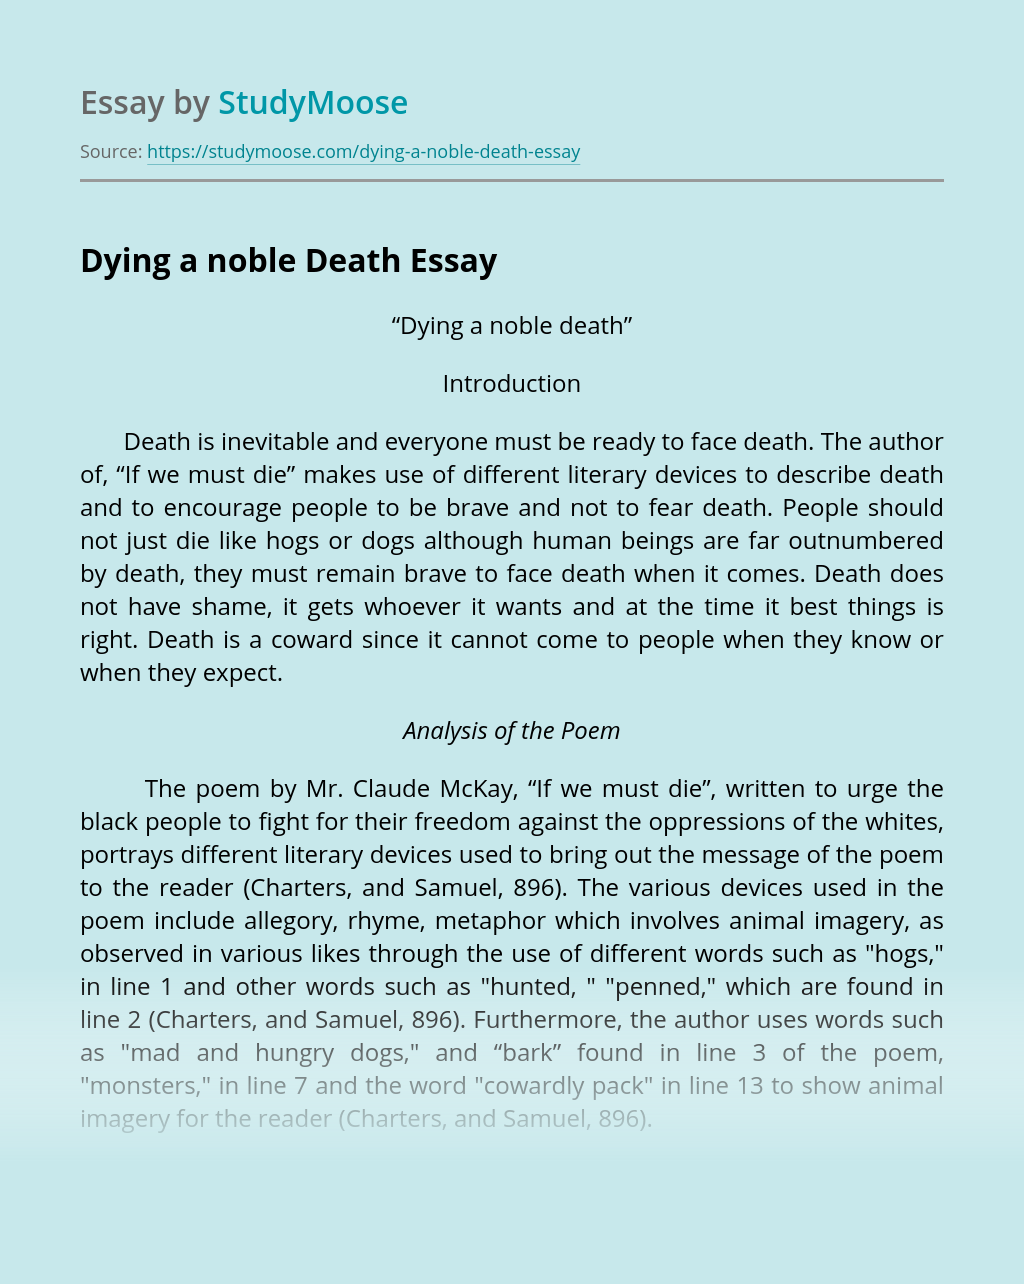 Dying a noble Death